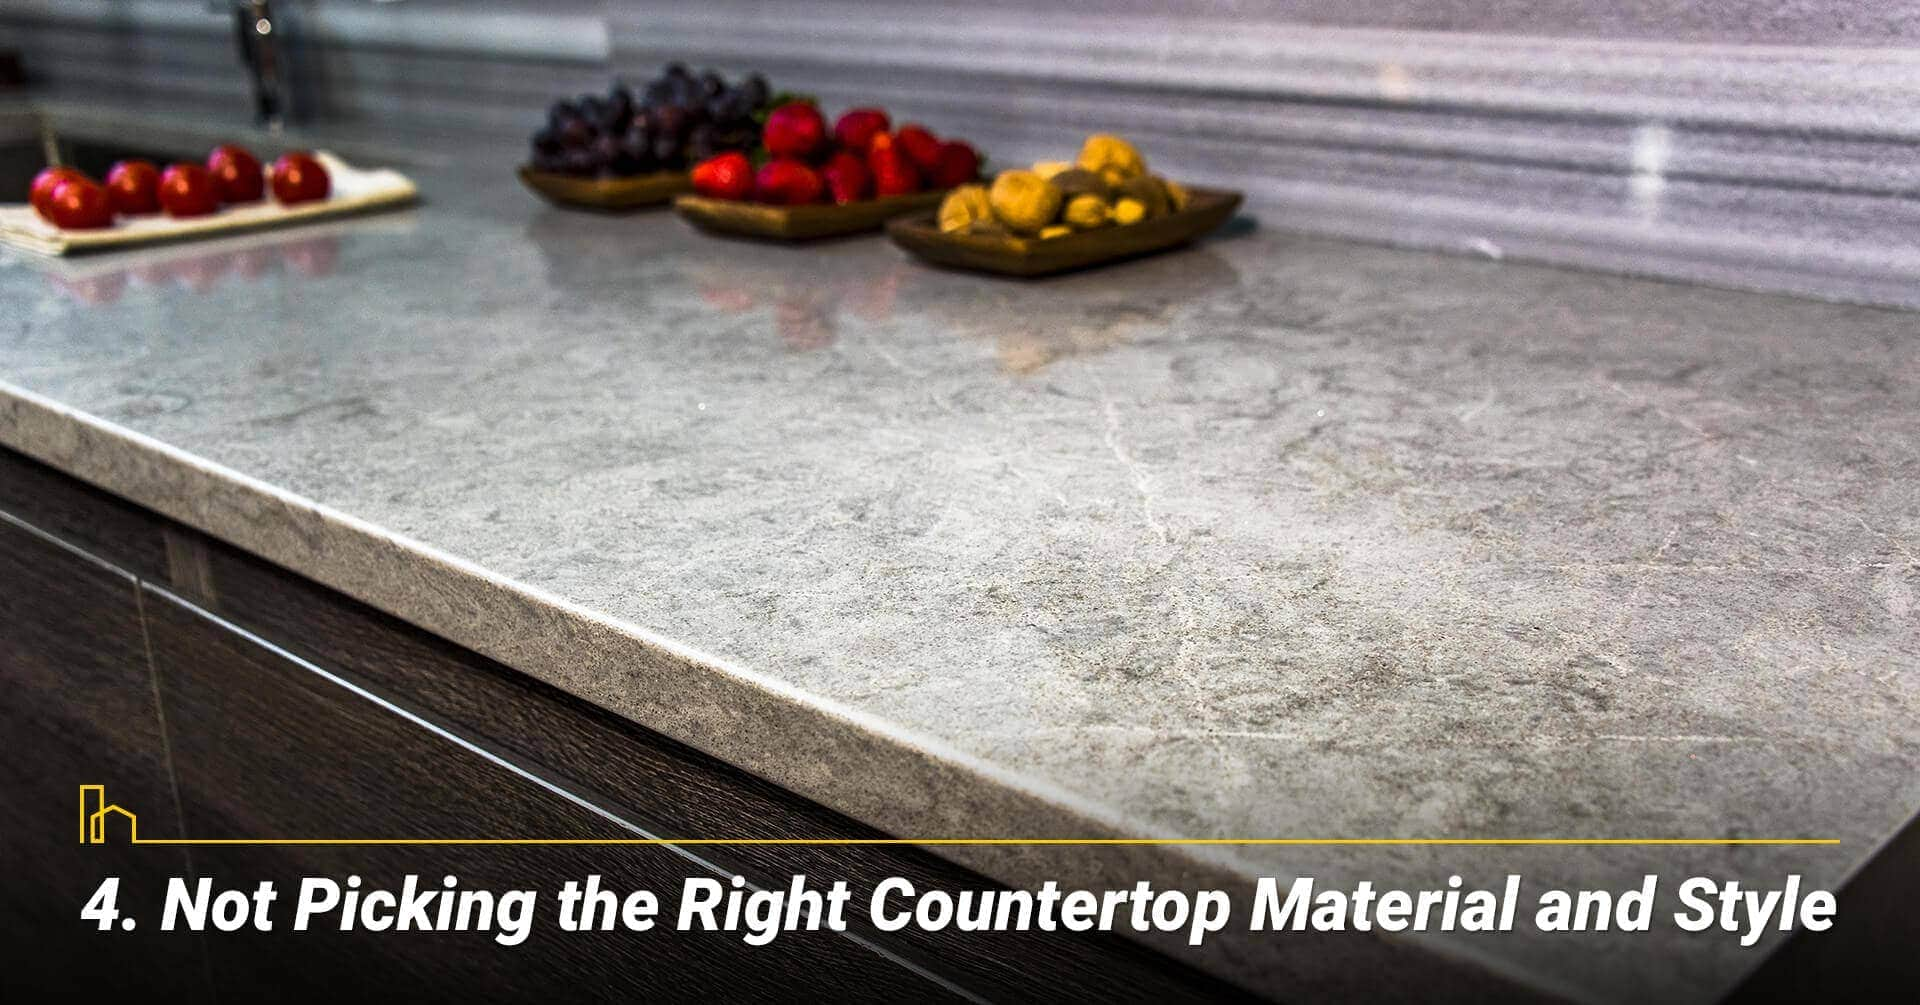 Not Picking the Right Countertop Material and Style